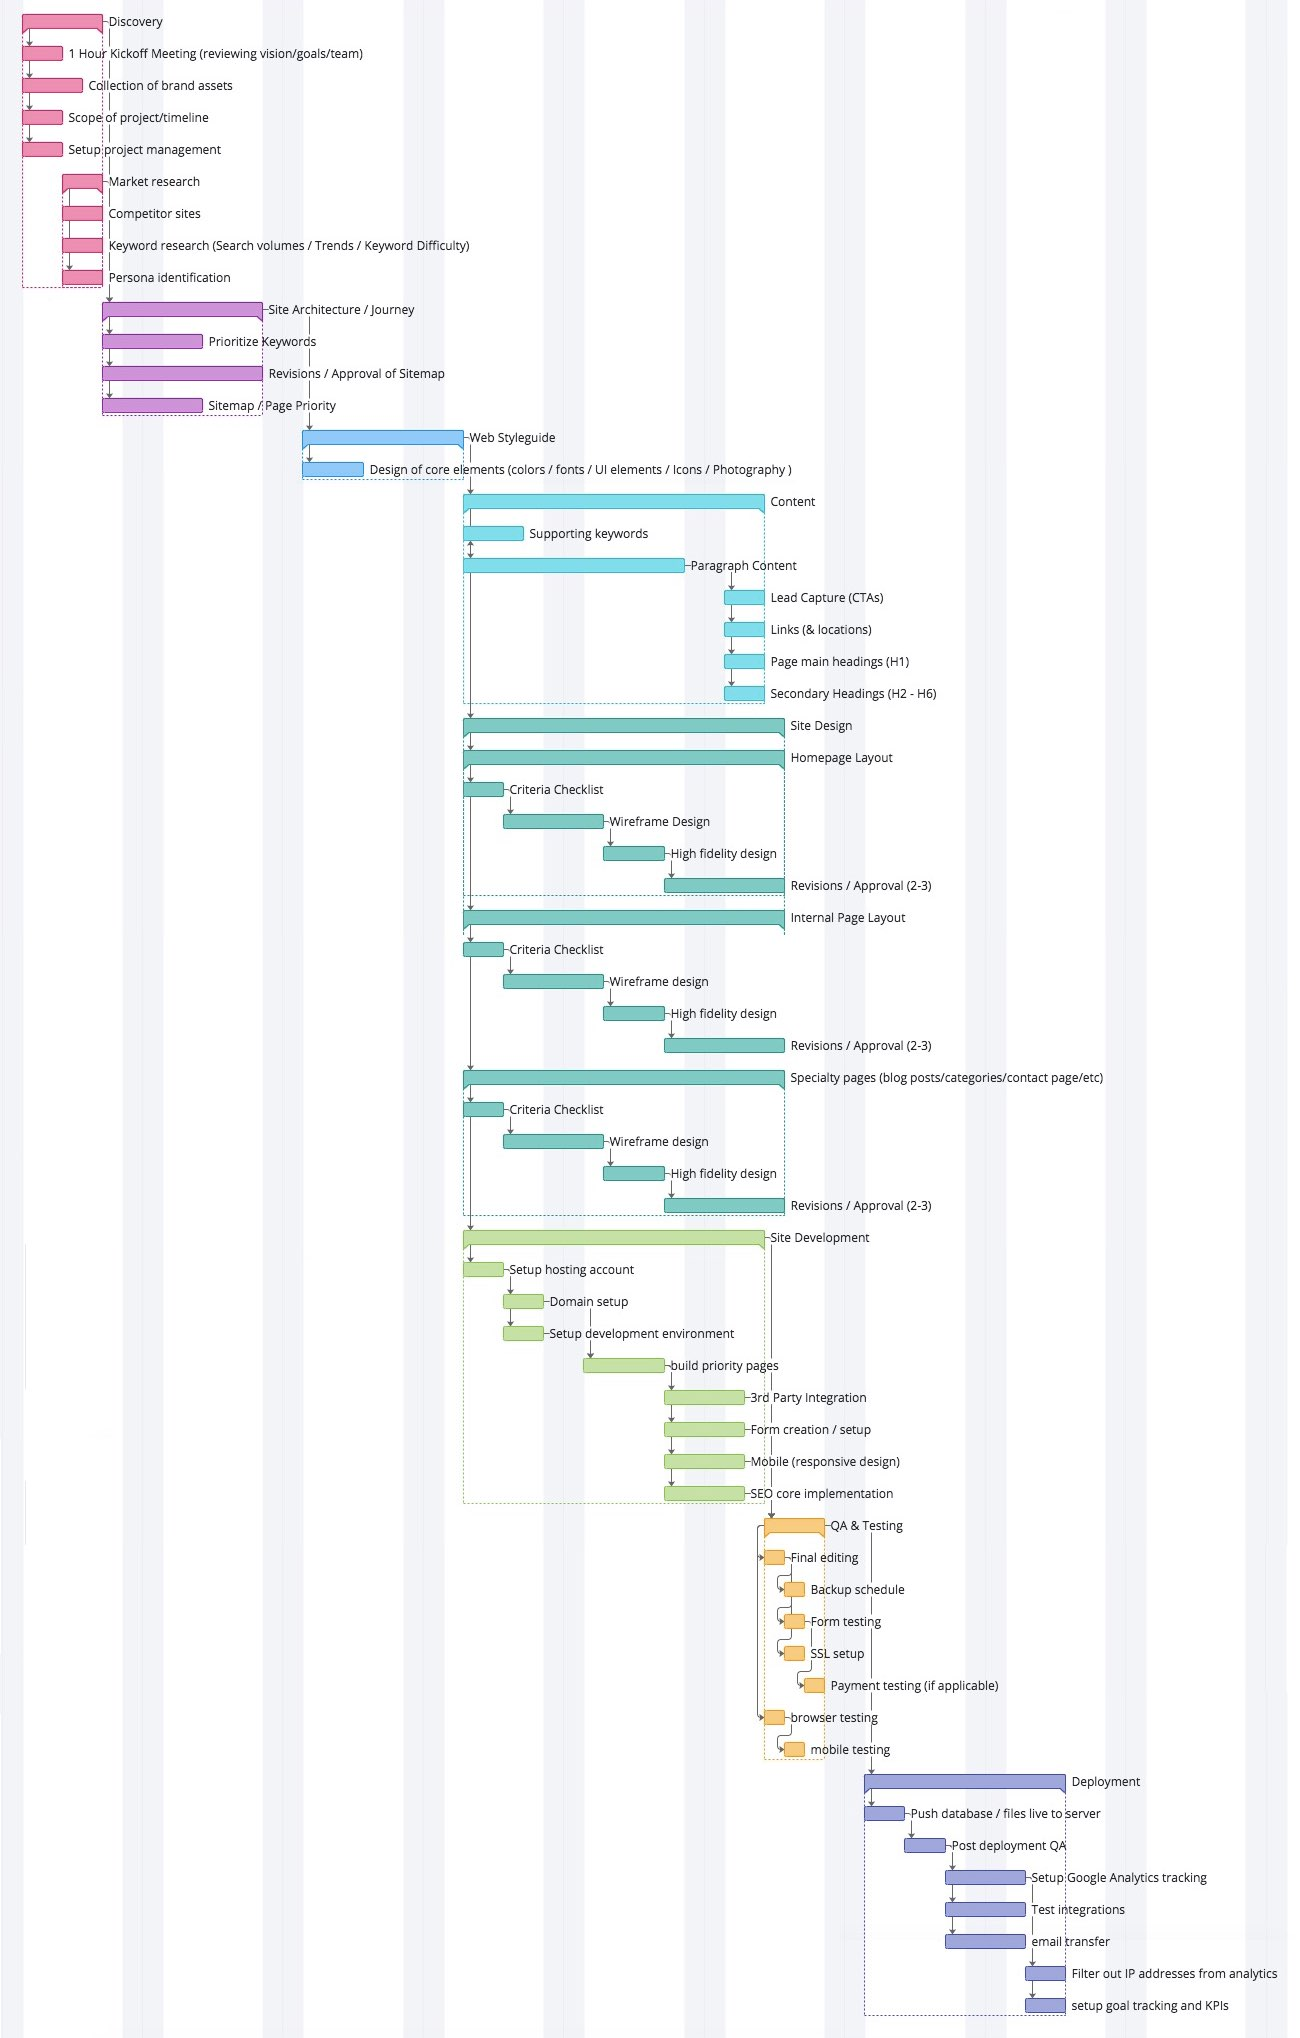 Overview of all sections and subtasks in the web design process